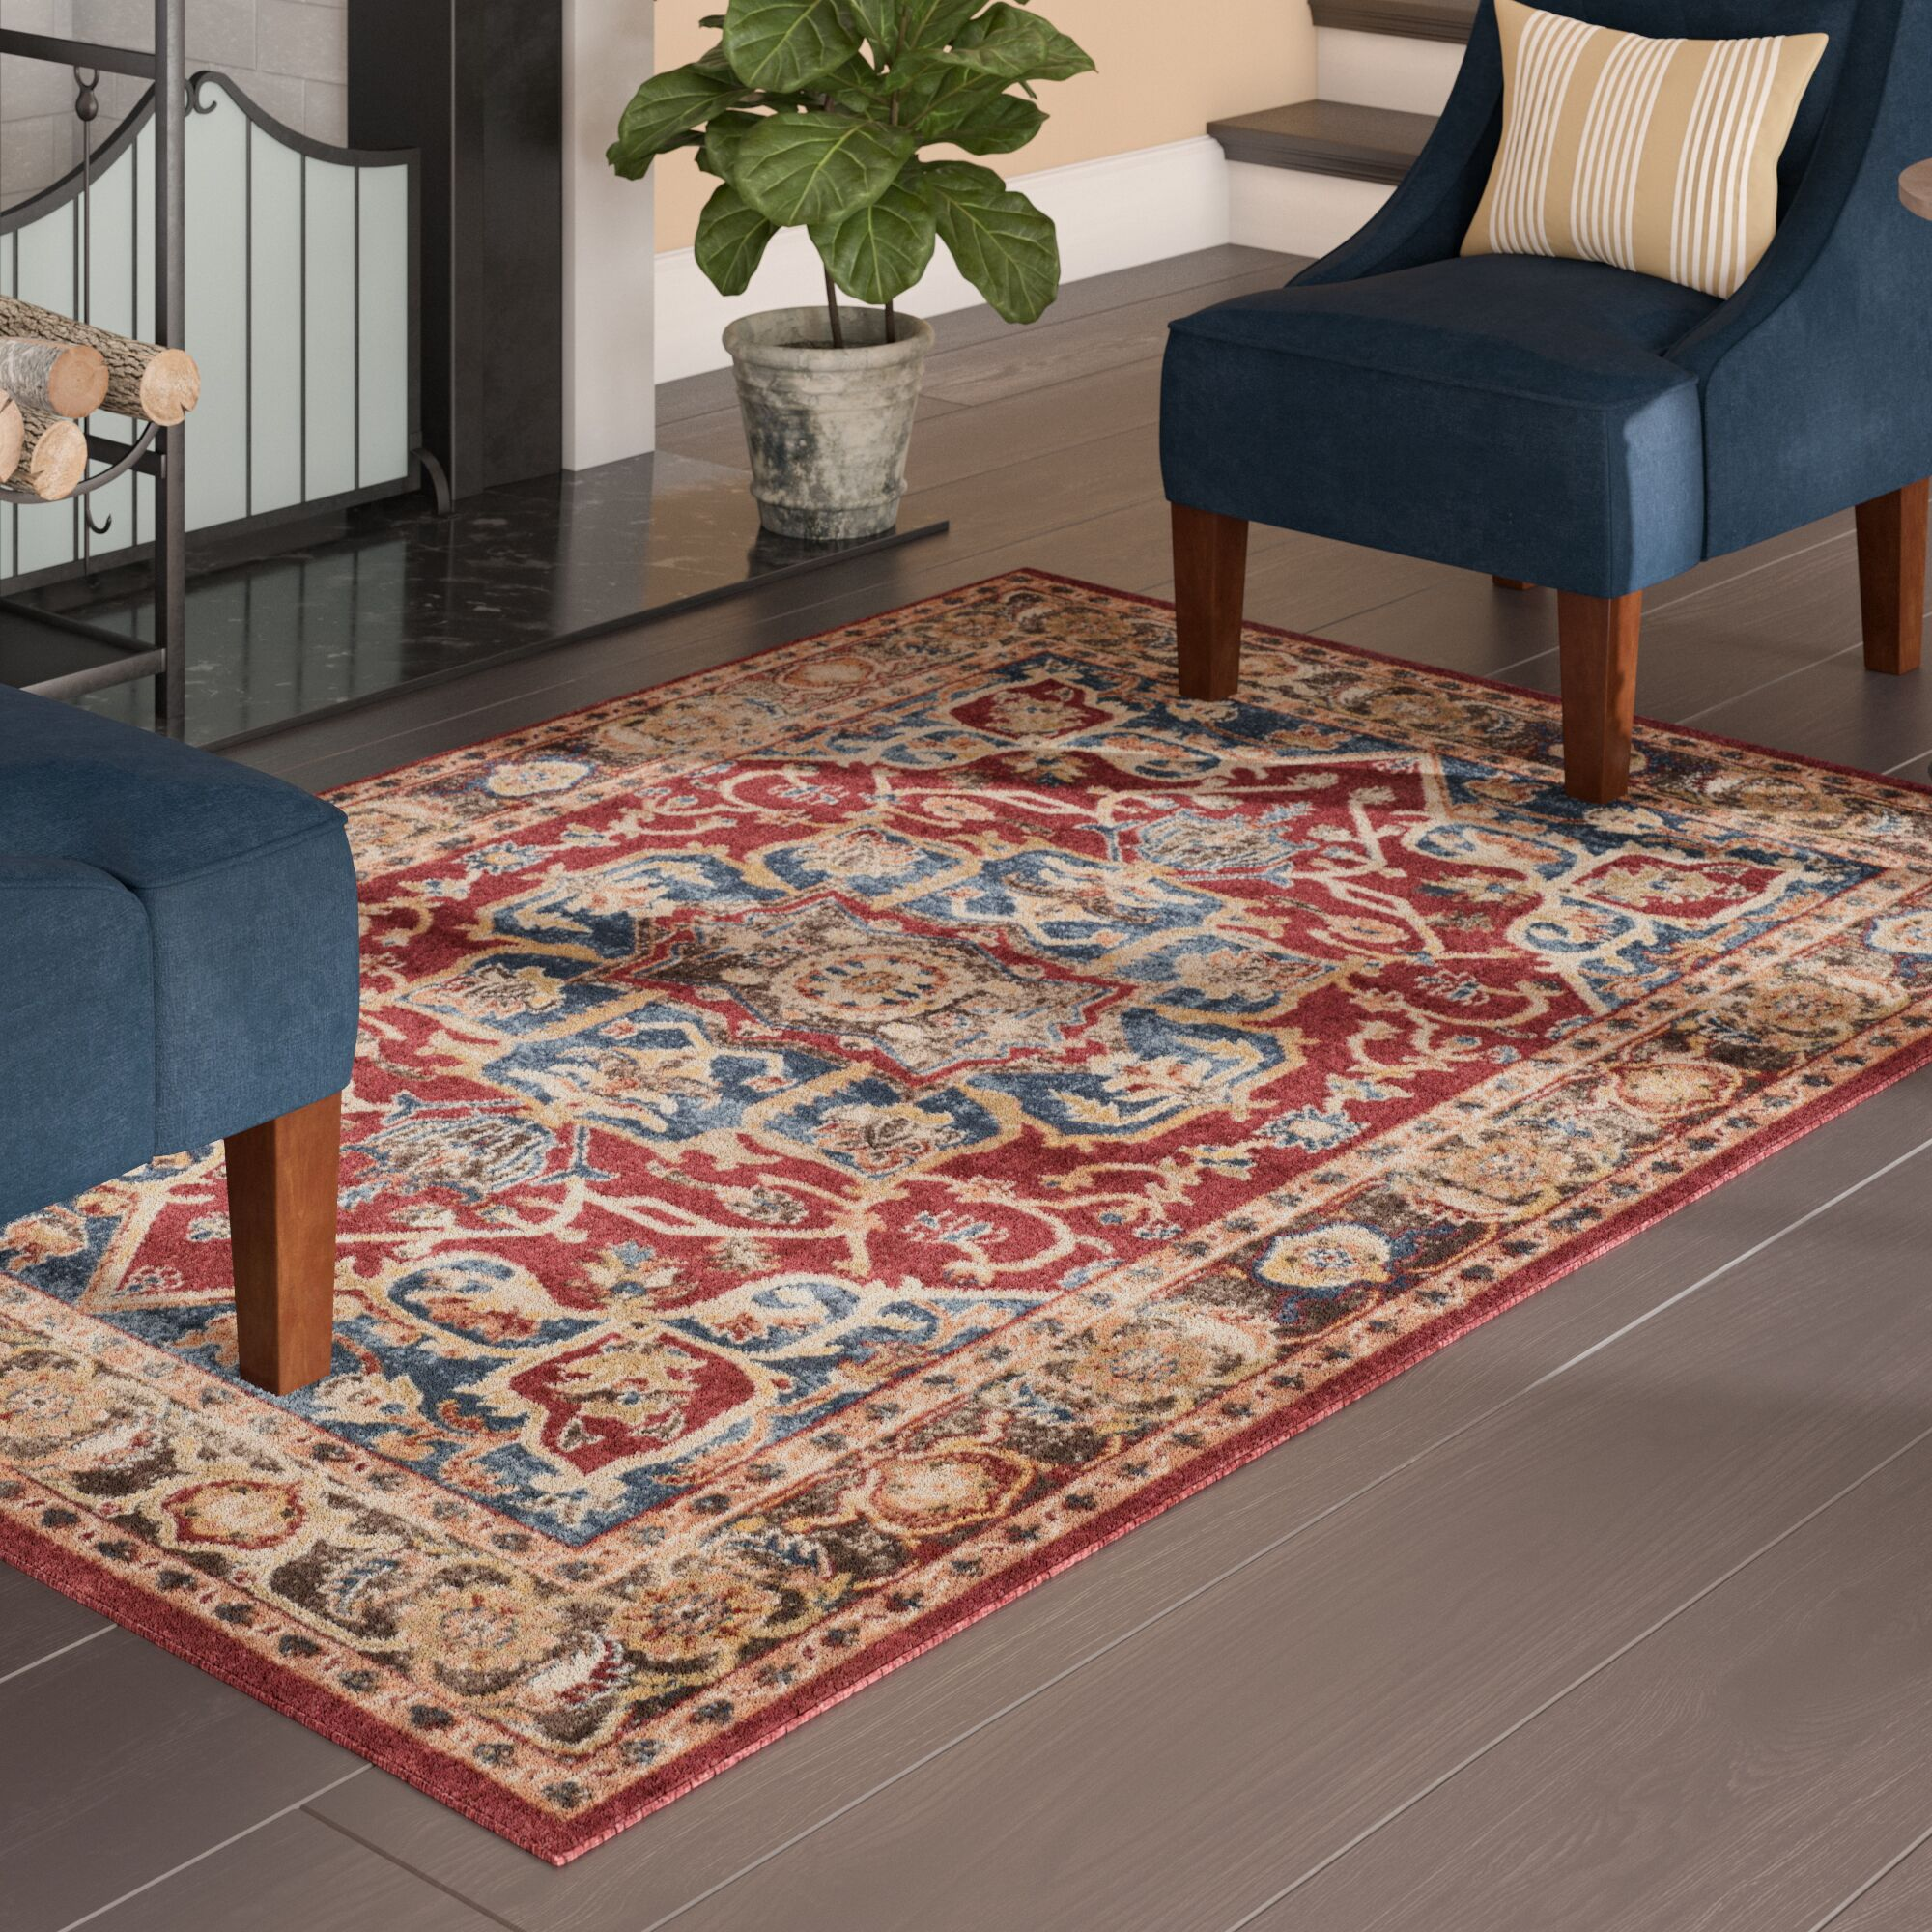 Broomhedge Red/Beige Area Rug Rug Size: Rectangle 10' x 14'